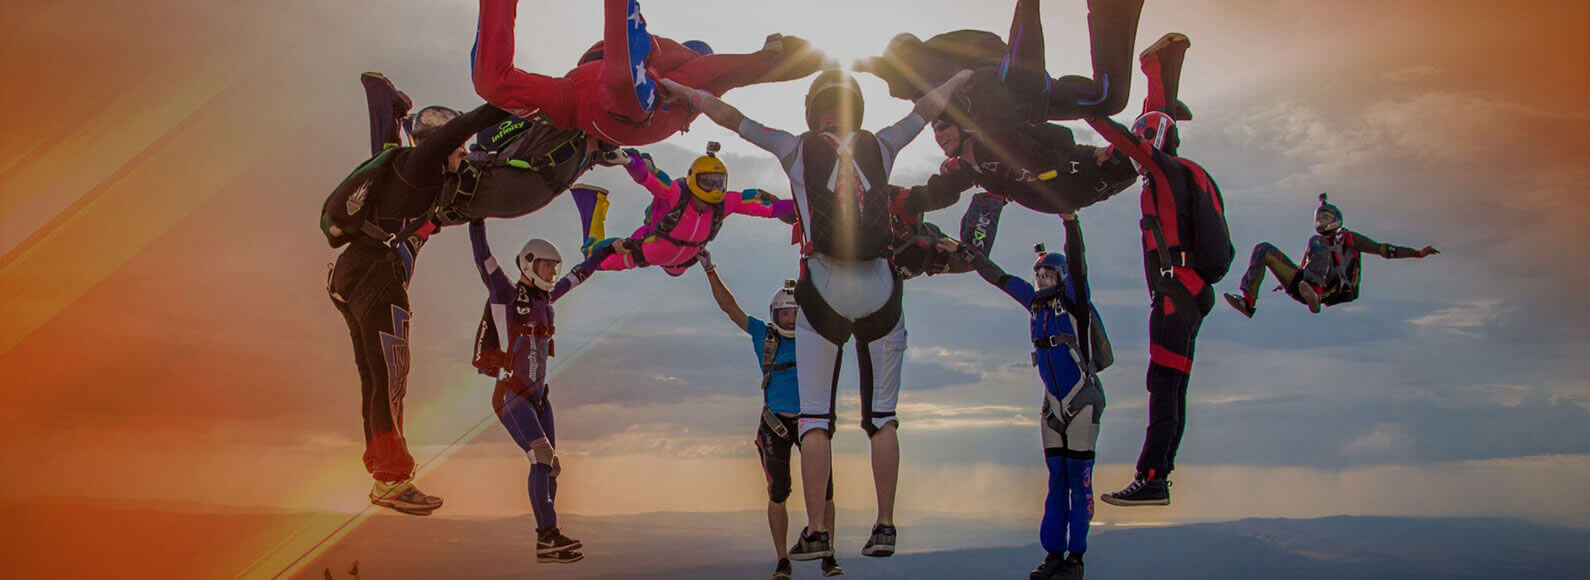 Group Skydive in Los Angeles